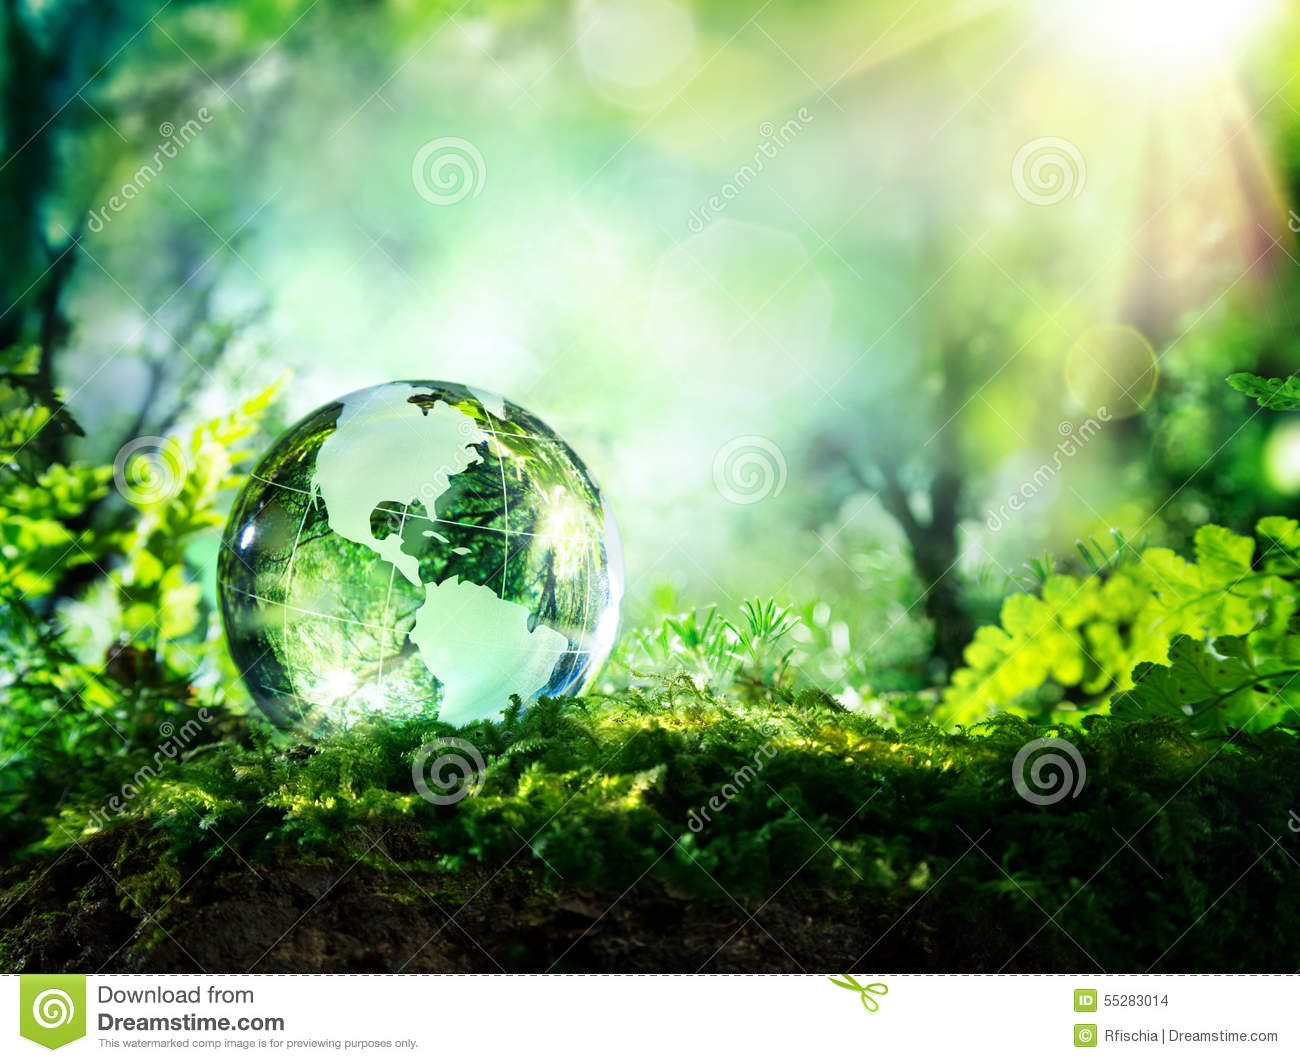 Download Crystal Globe On Moss In A Forest Stock Photo - Image of trees, environmental: 55283014